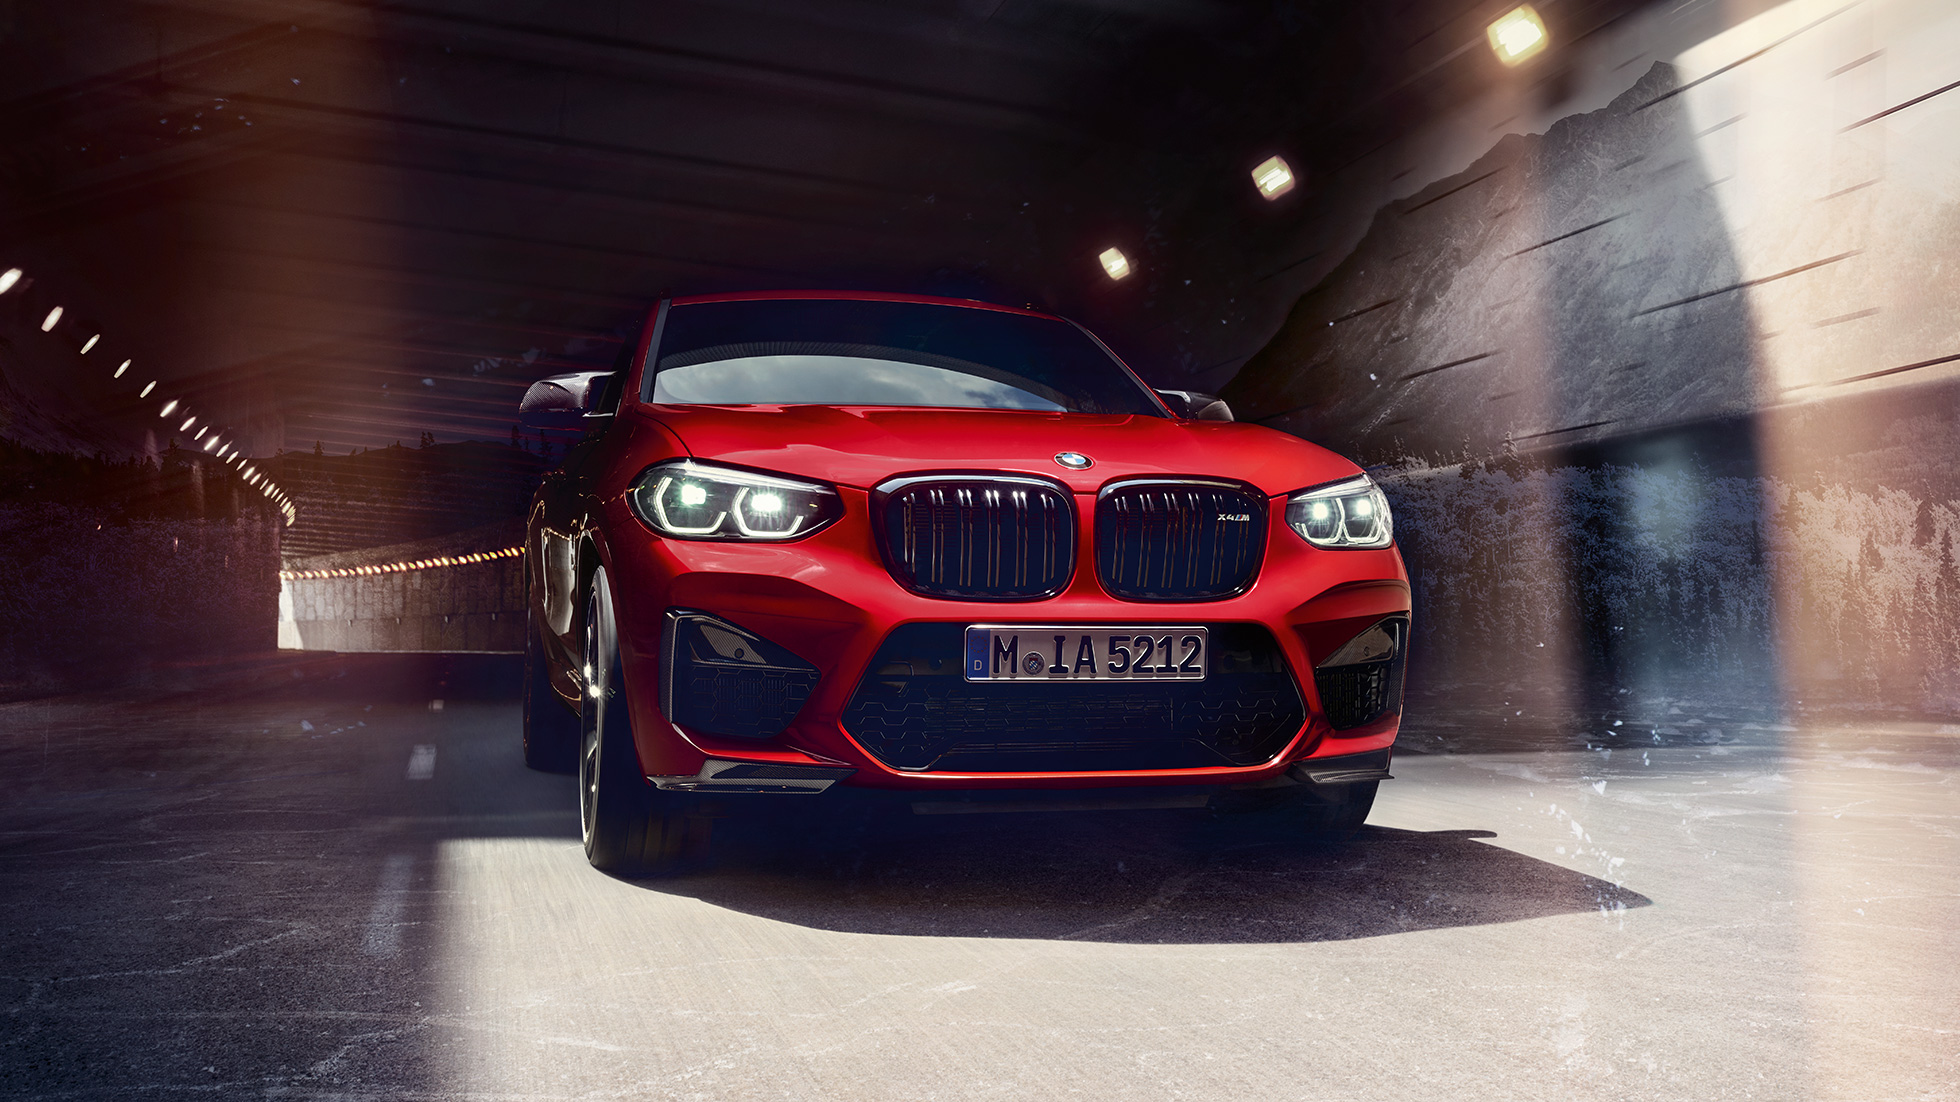 BMW X4 M in Toronto Red metallic, exterior, three-quarter front view.